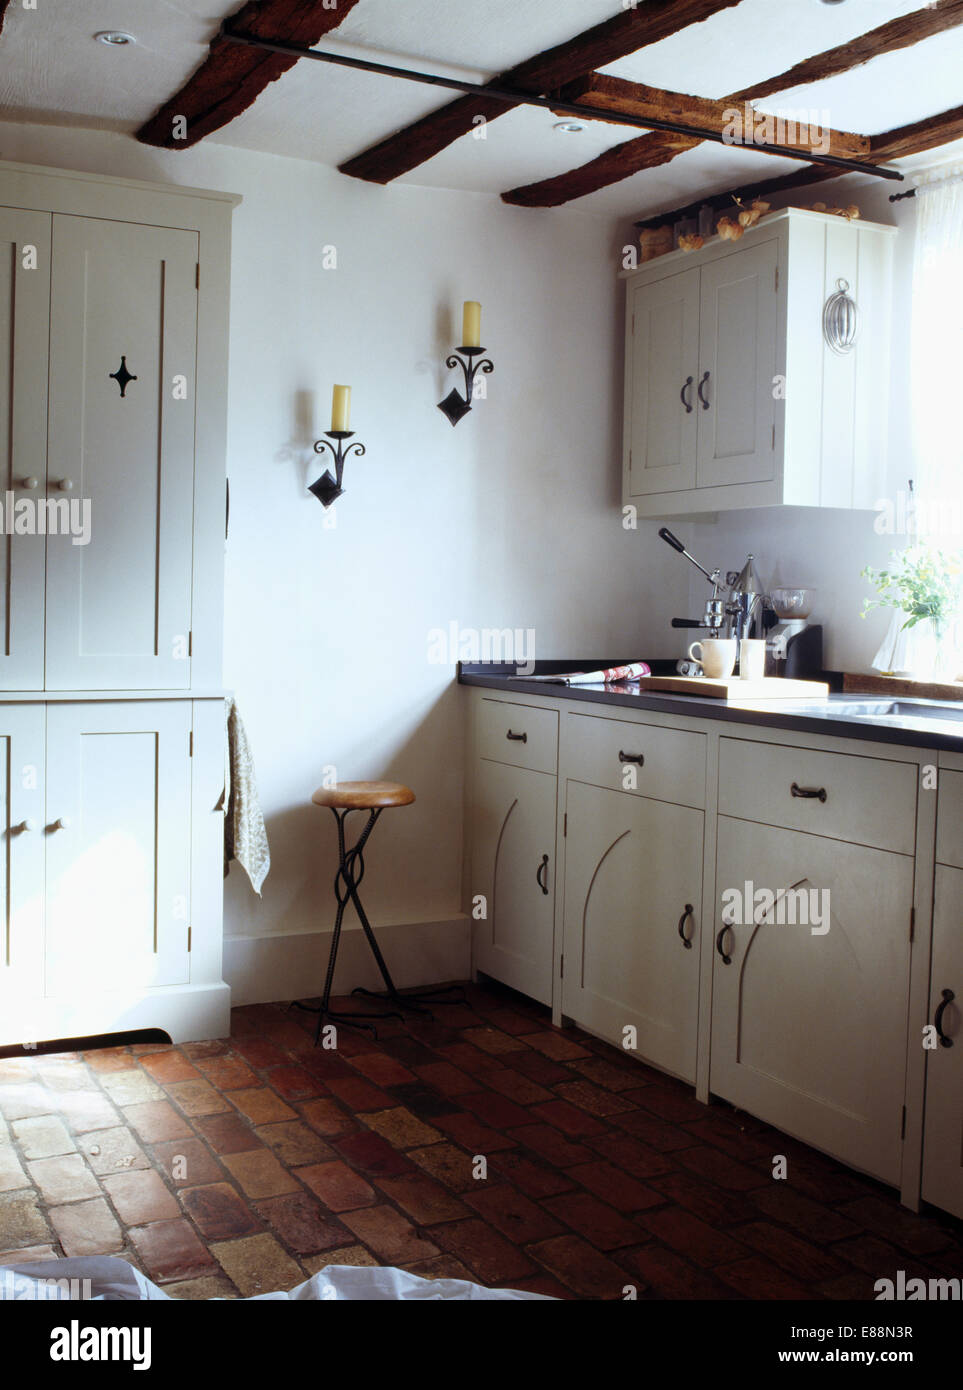 Brick Floors In Kitchen Old Brick Flooring In White Country Cottage Kitchen Stock Photo